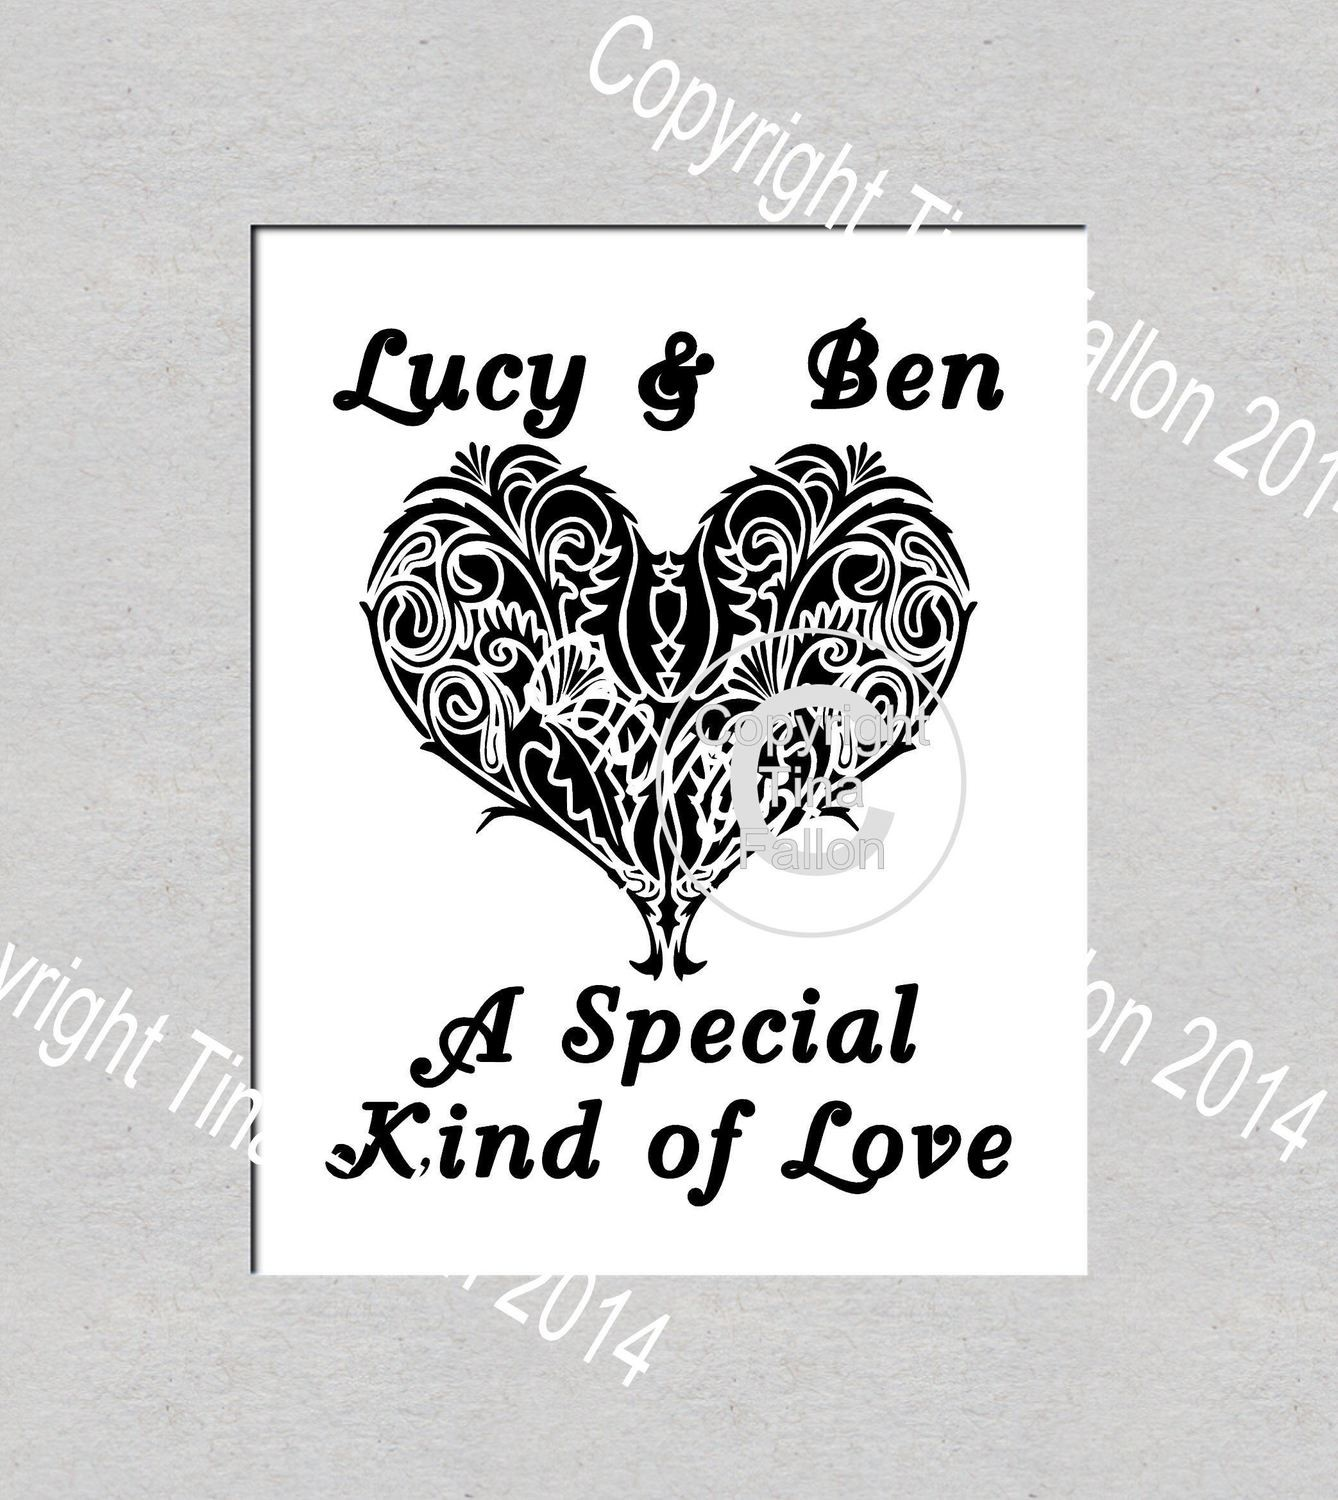 A Special Kind of Love, Vinyl Art Quote